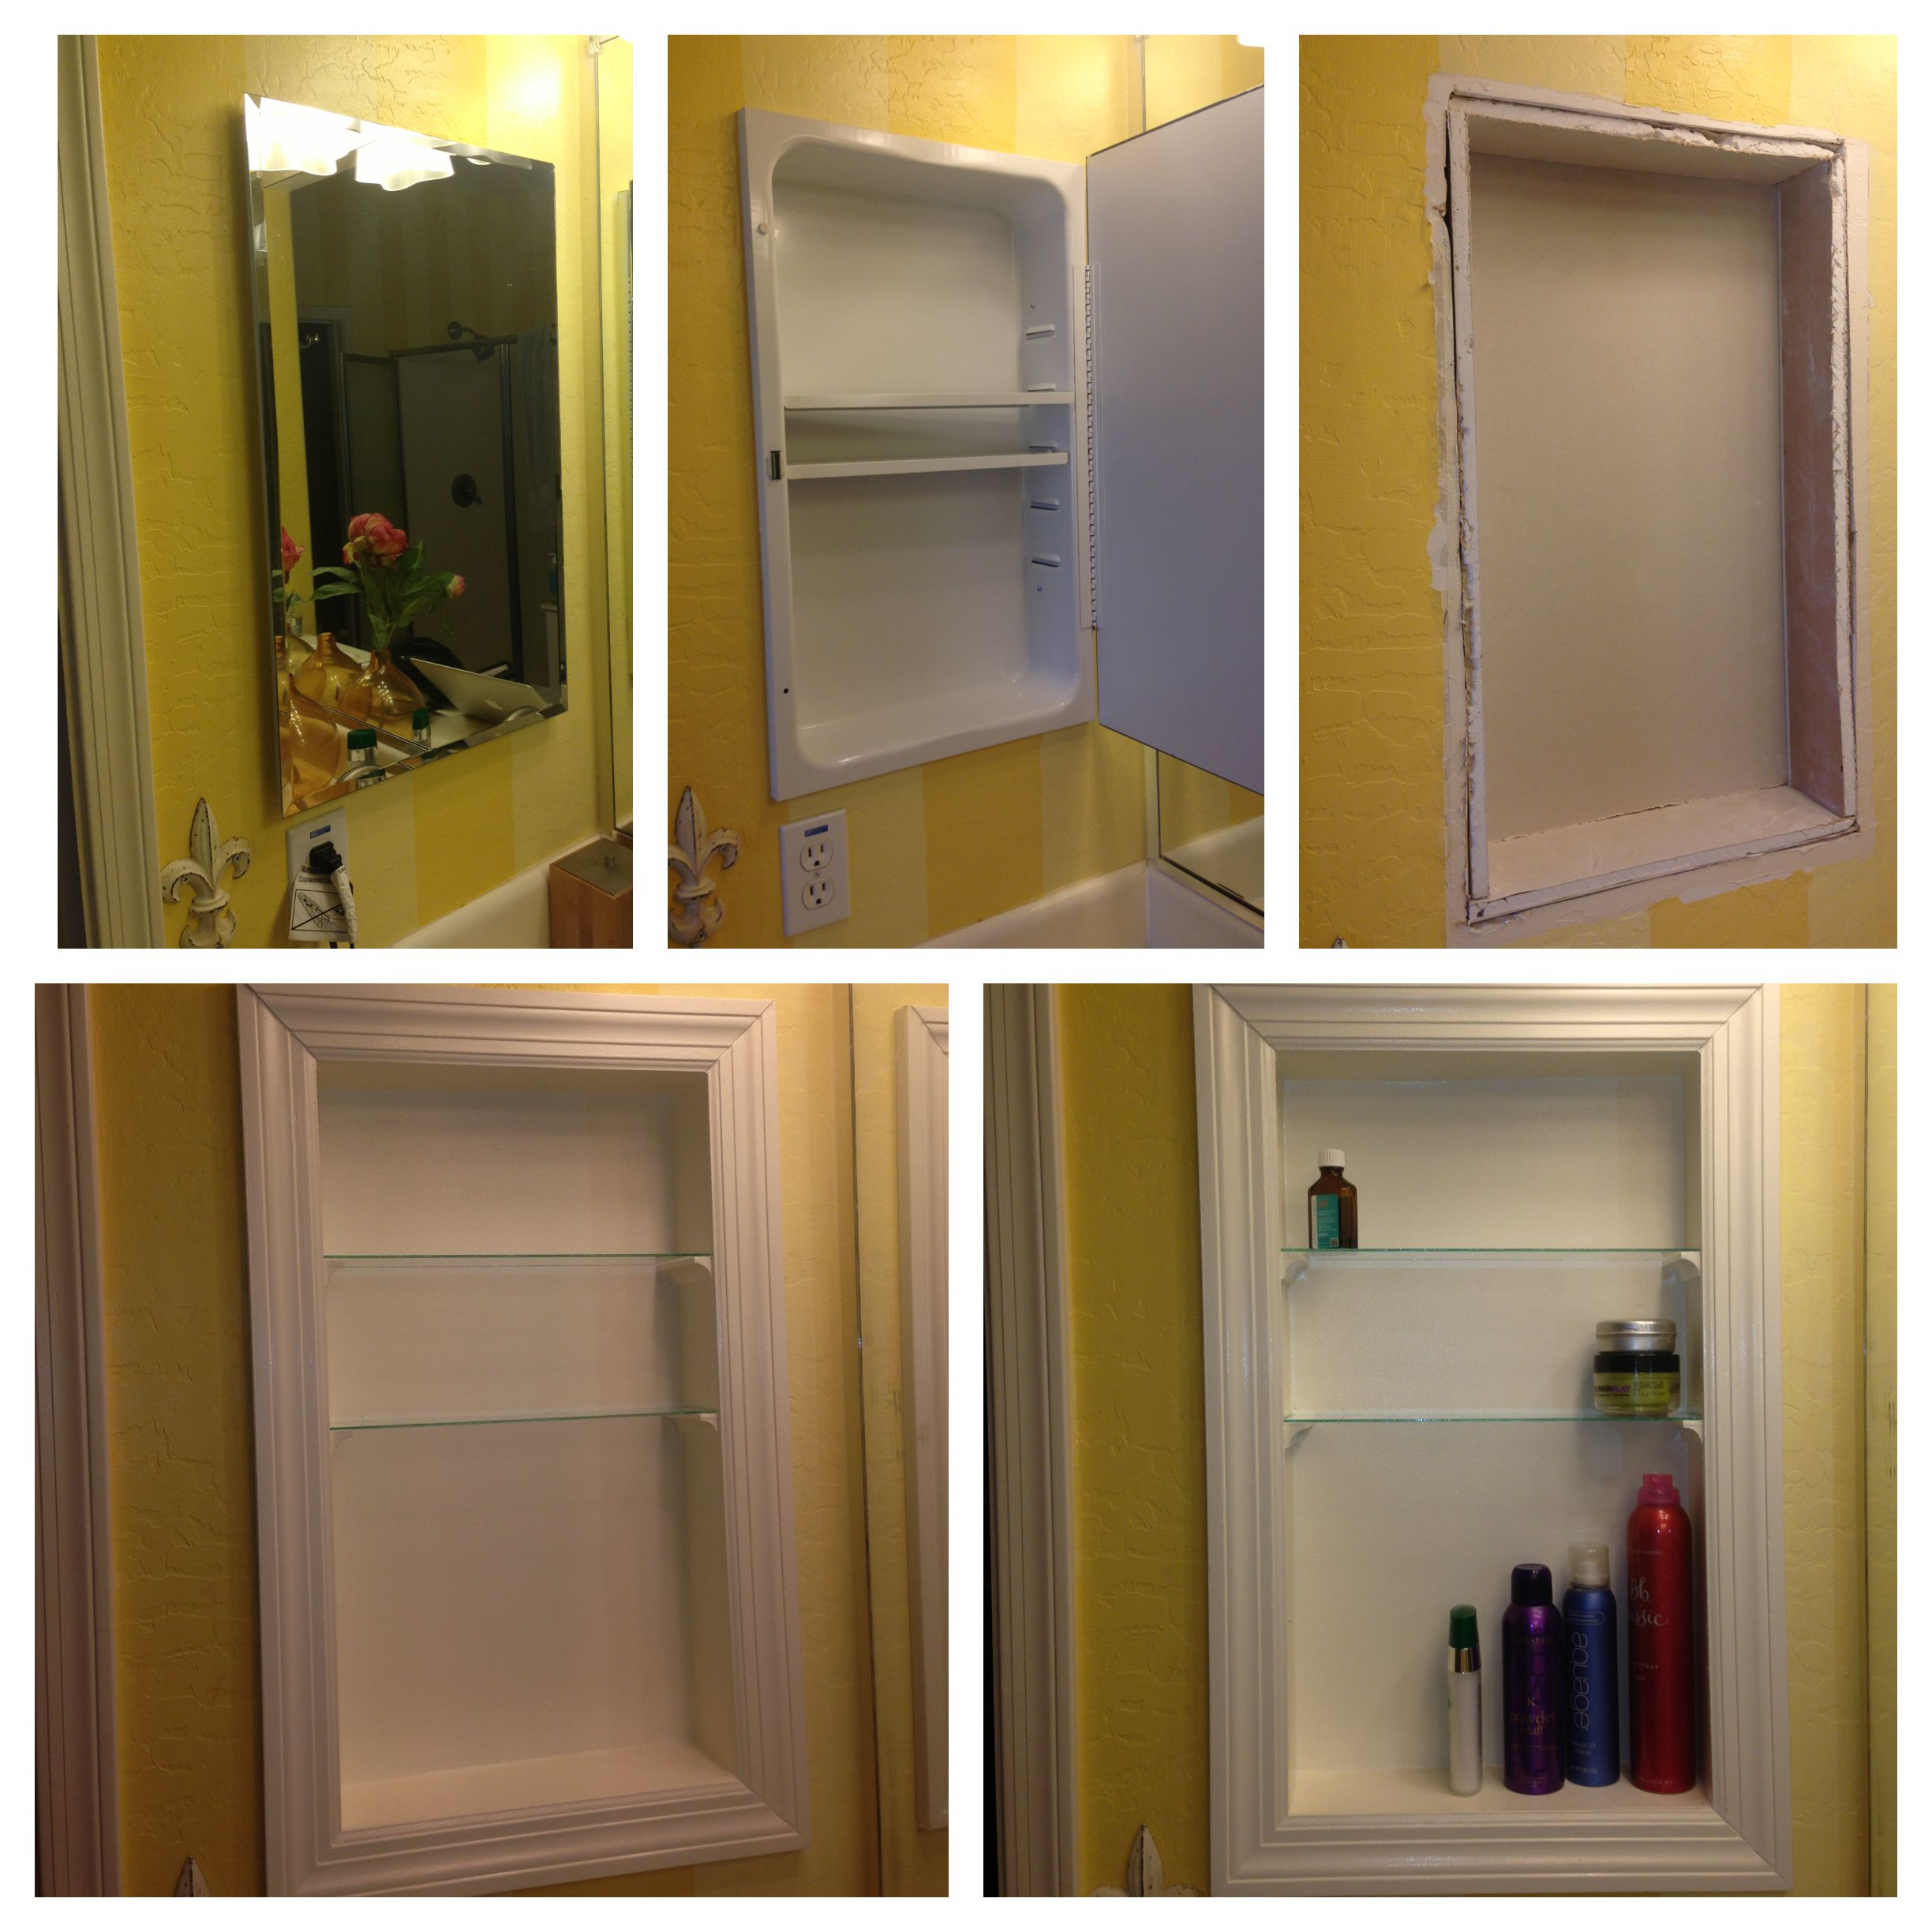 Converted Metal Medicine Cabinet Into Open Shelves I